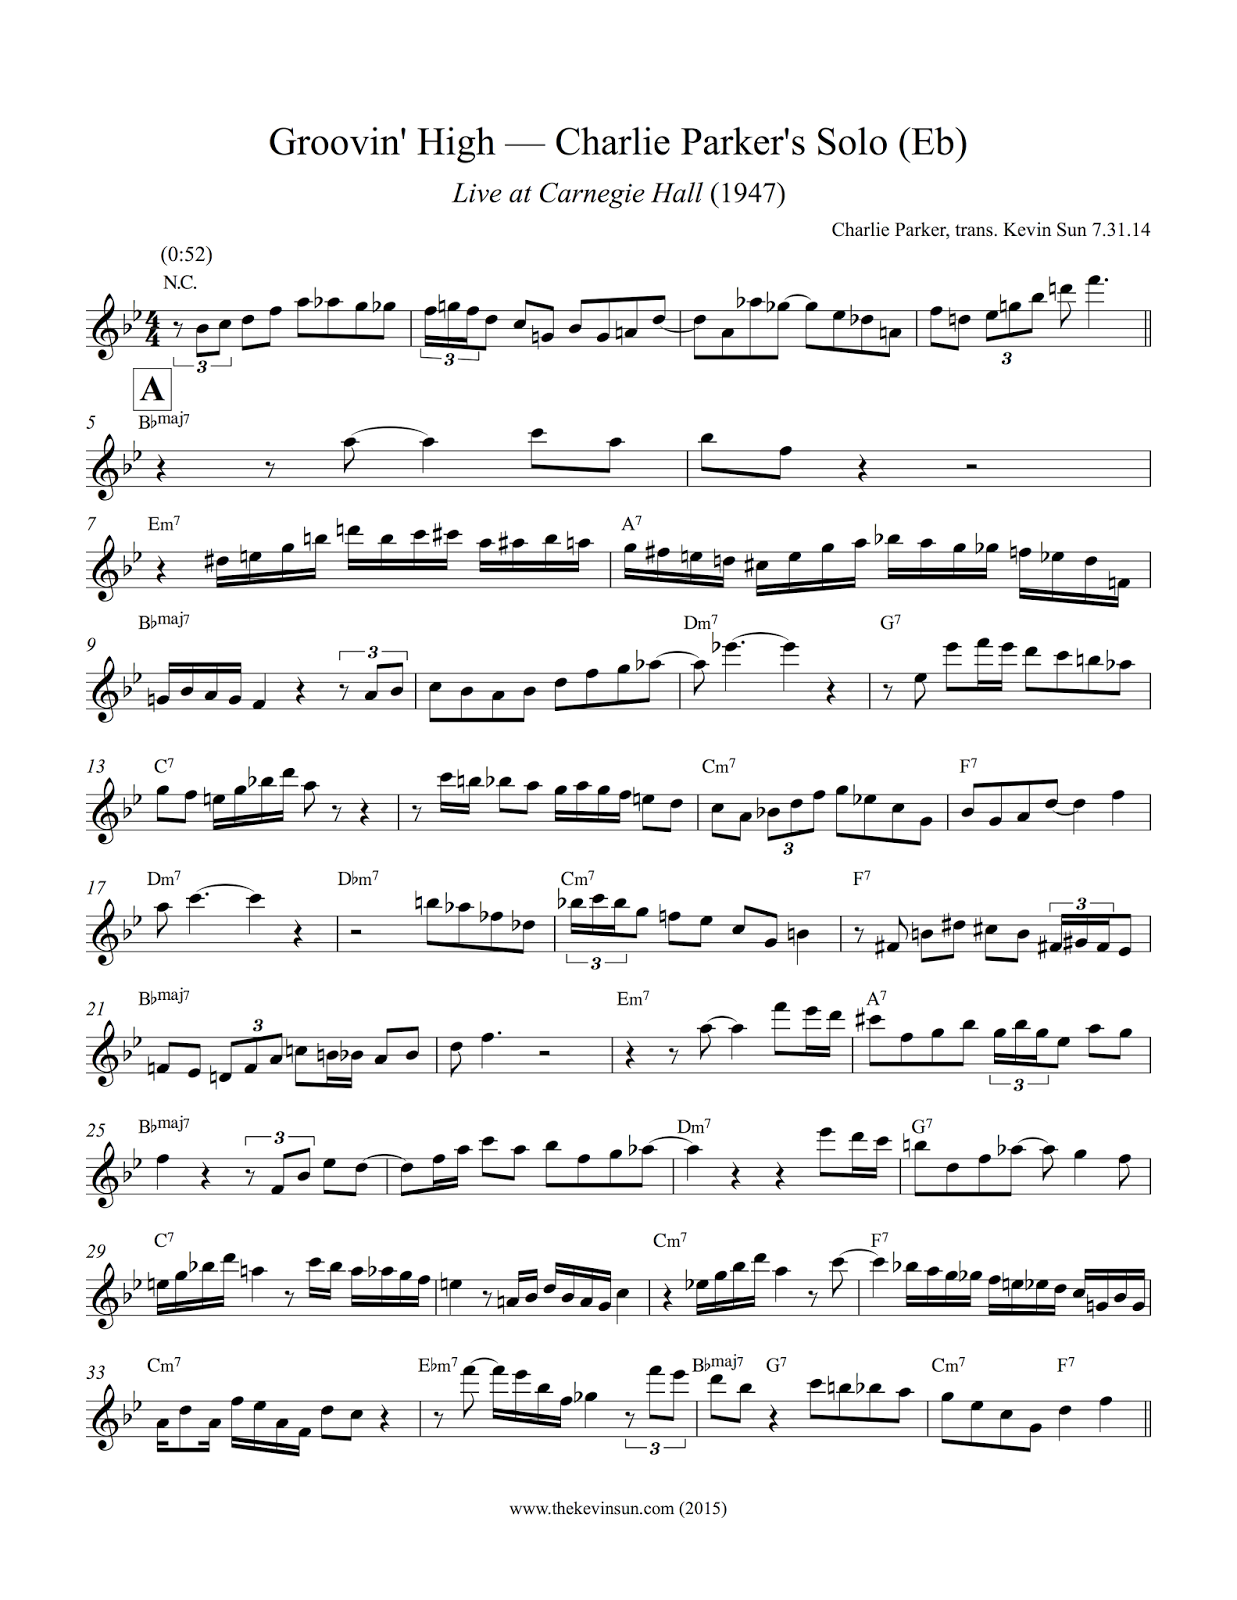 Groovin' High — Charlie Parker Solo Transcription (Eb) Page 1